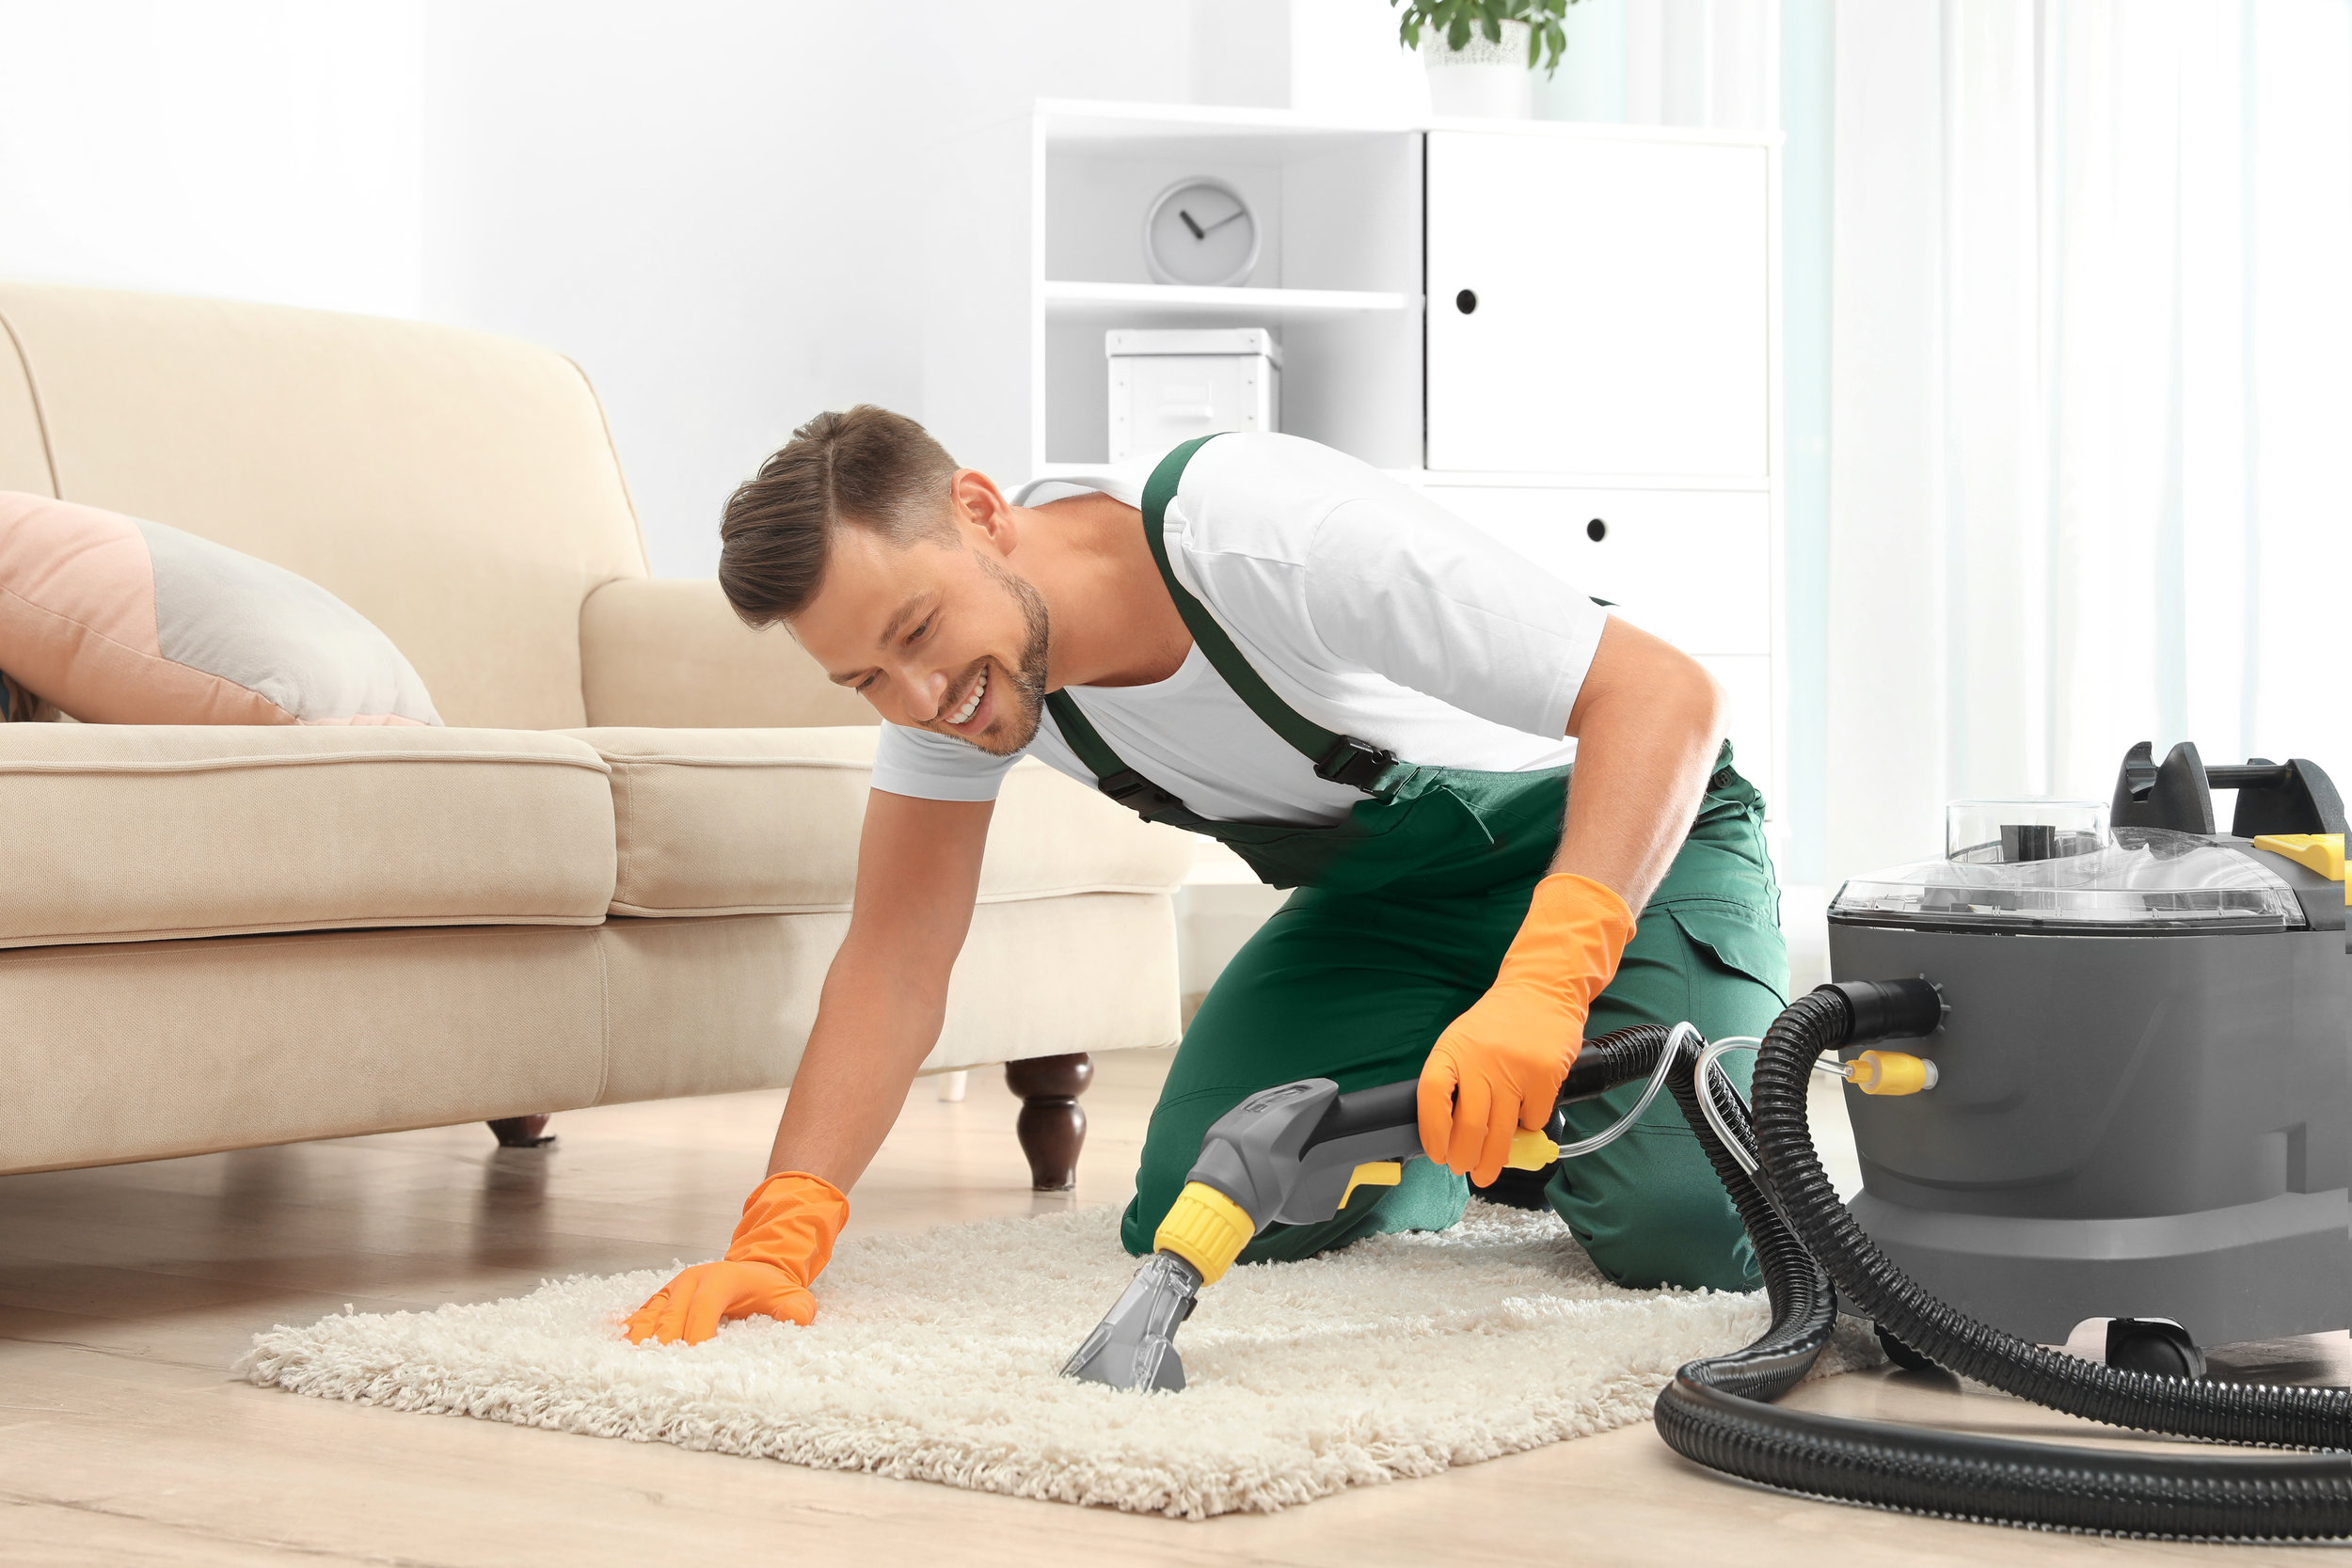 Male janitor removing dirt from rug with carpet cleaner in room